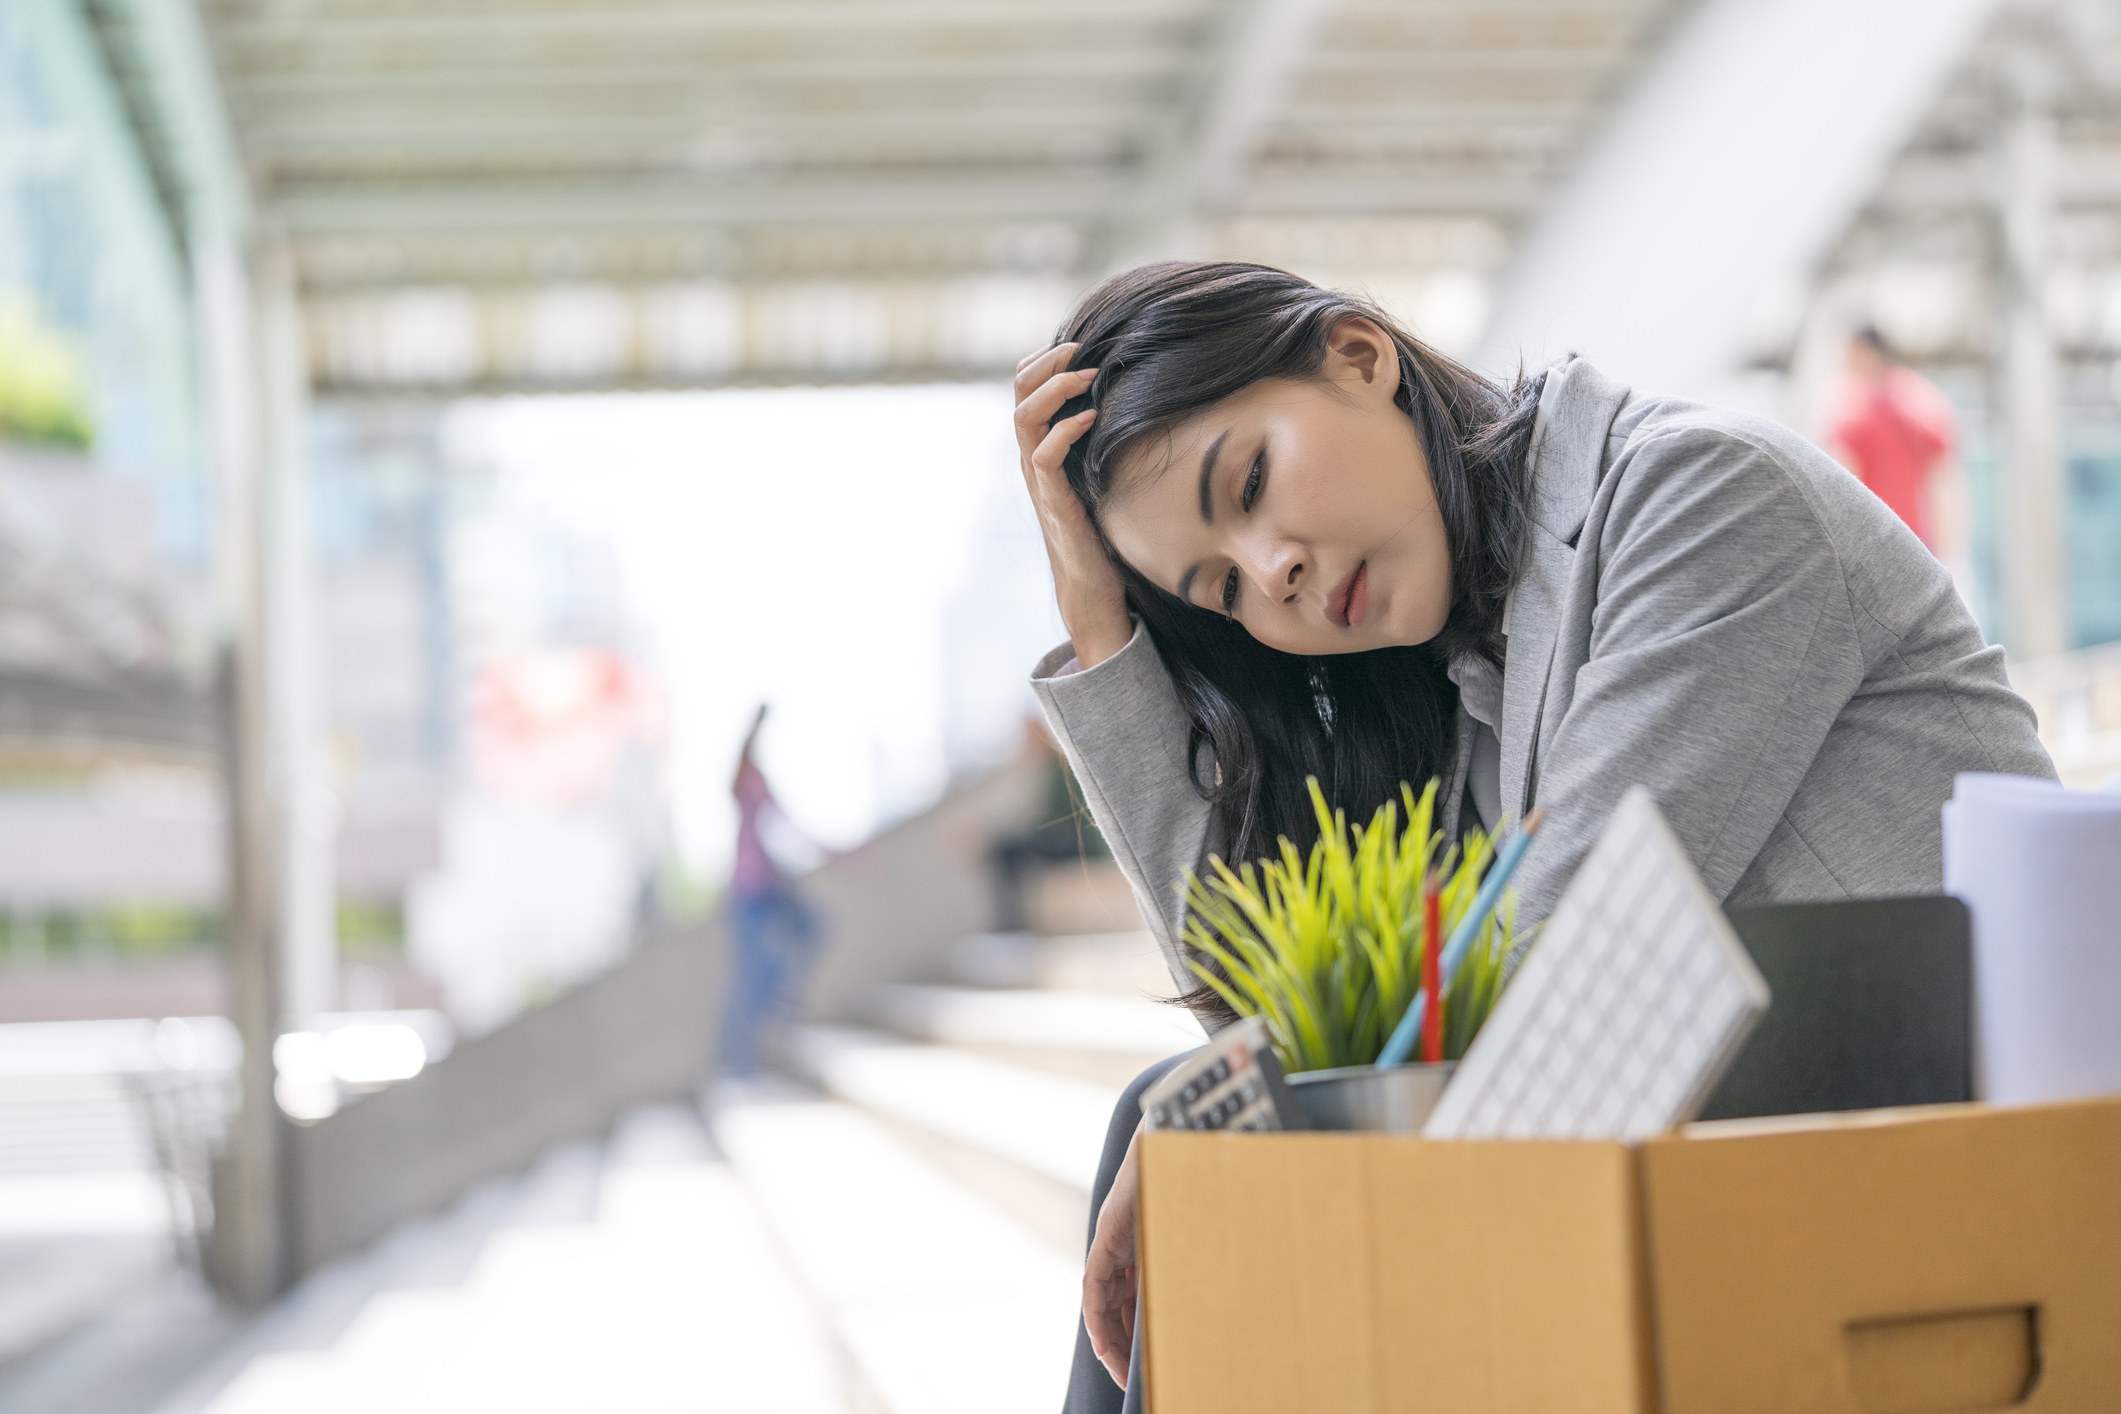 An employee sitting with a box of office supplies, as if leaving a job